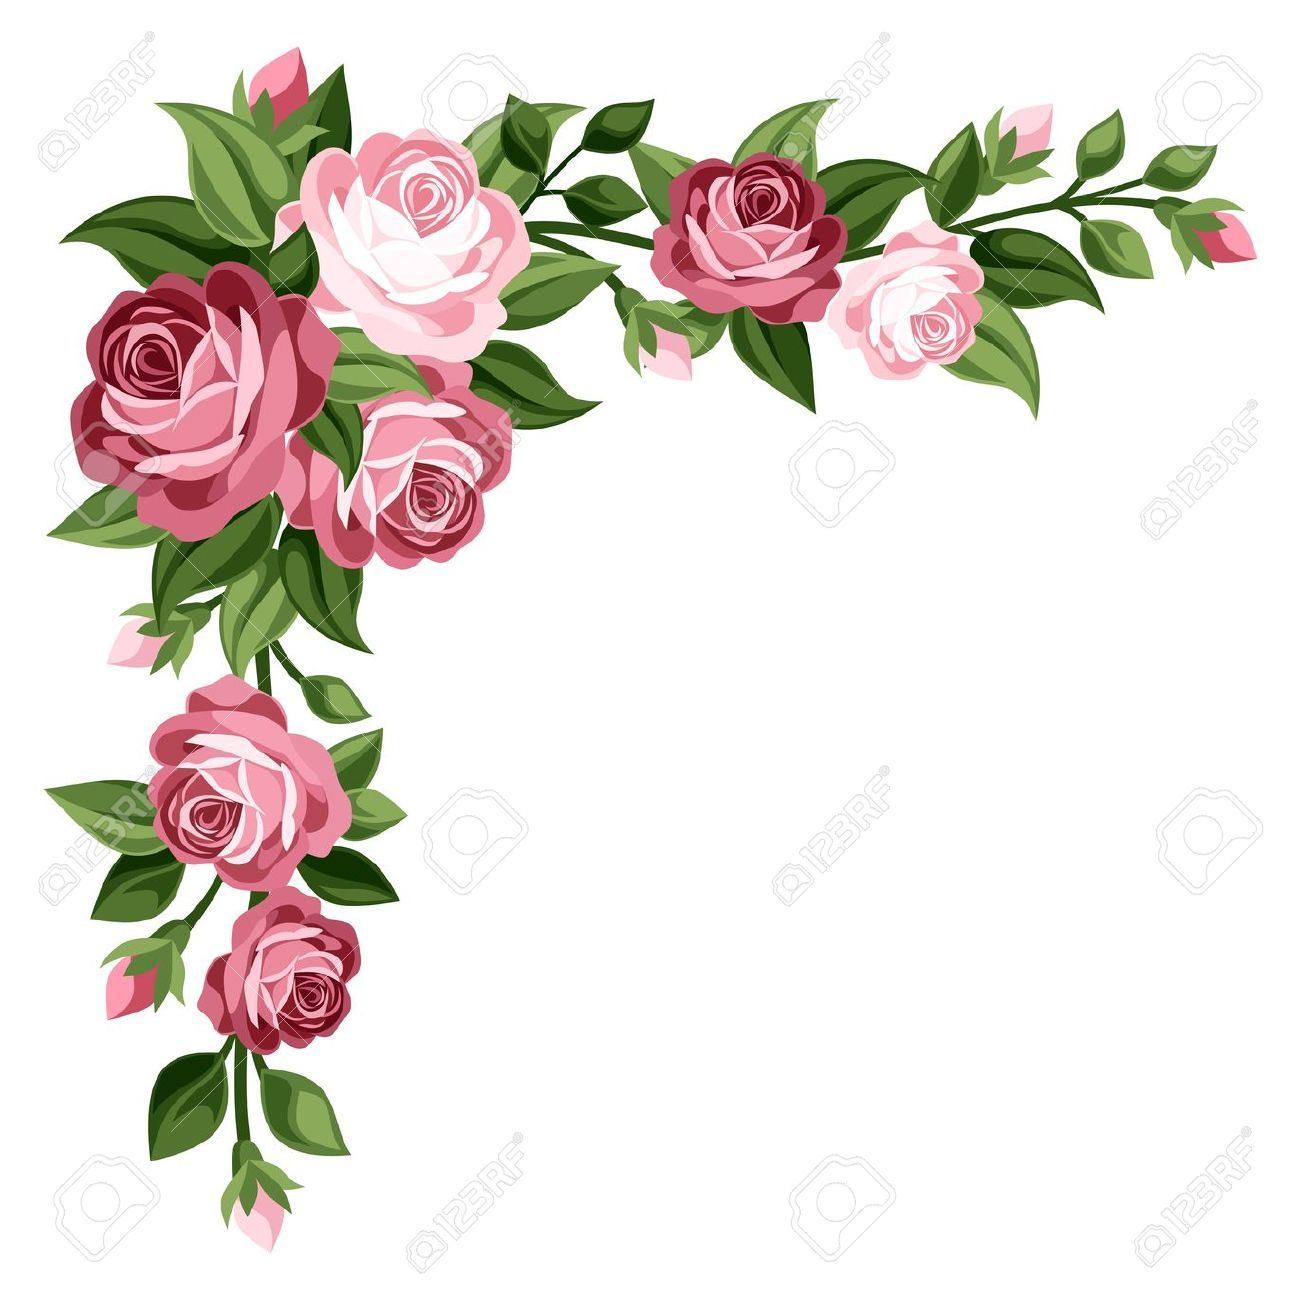 rose flower border clipart tags pinterest rose flower and flowers rh pinterest com clip art flower borders and frames clipart flower page borders